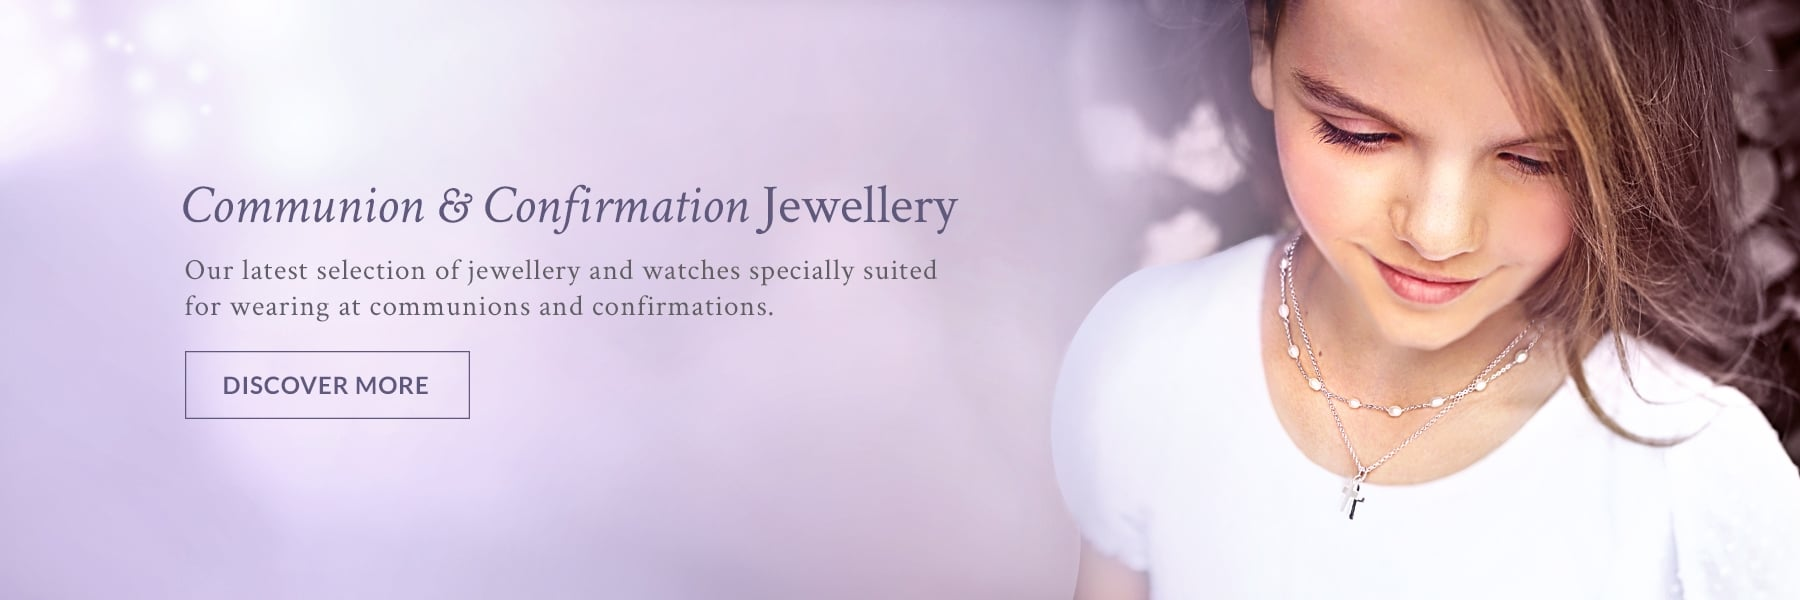 Communion and Confirmation Jewellery